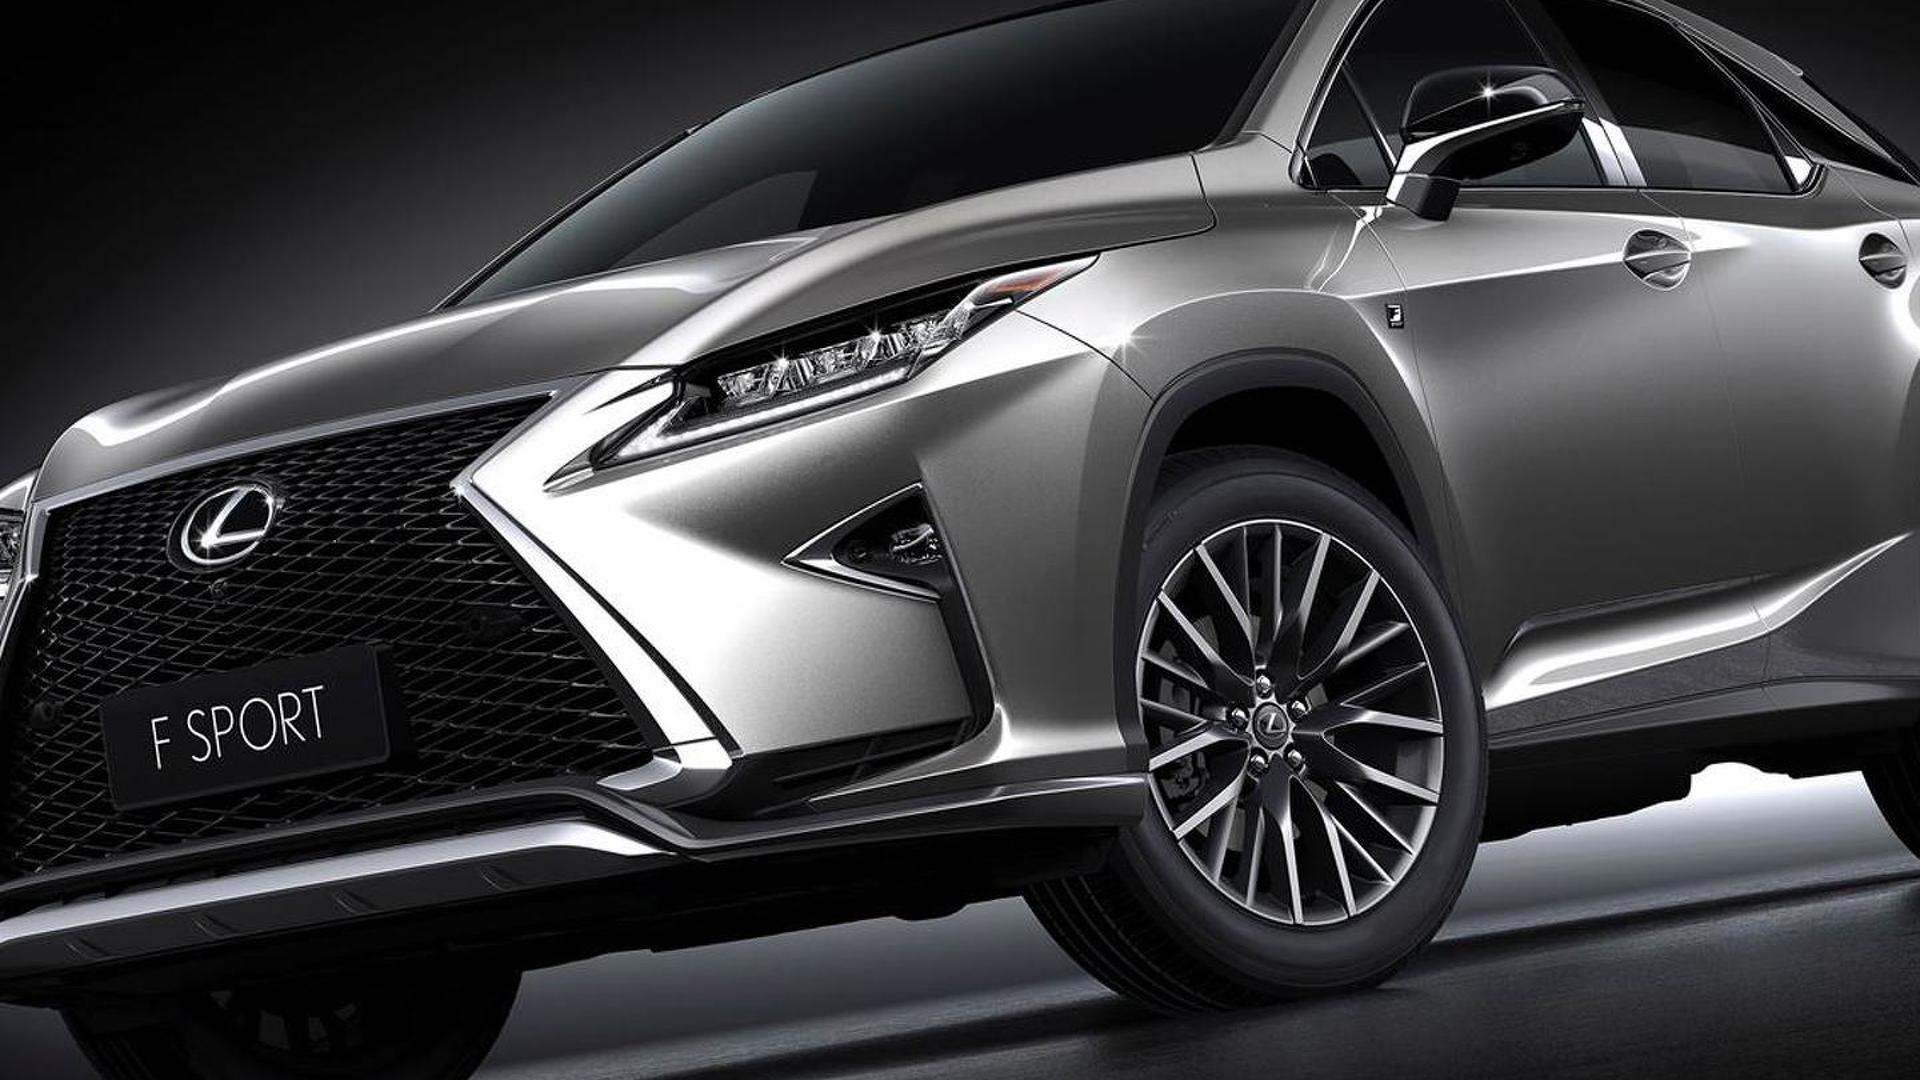 2016 Lexus Rx 200t F Sport Arrives In Shanghai With 2 0 Liter Turbo Engine